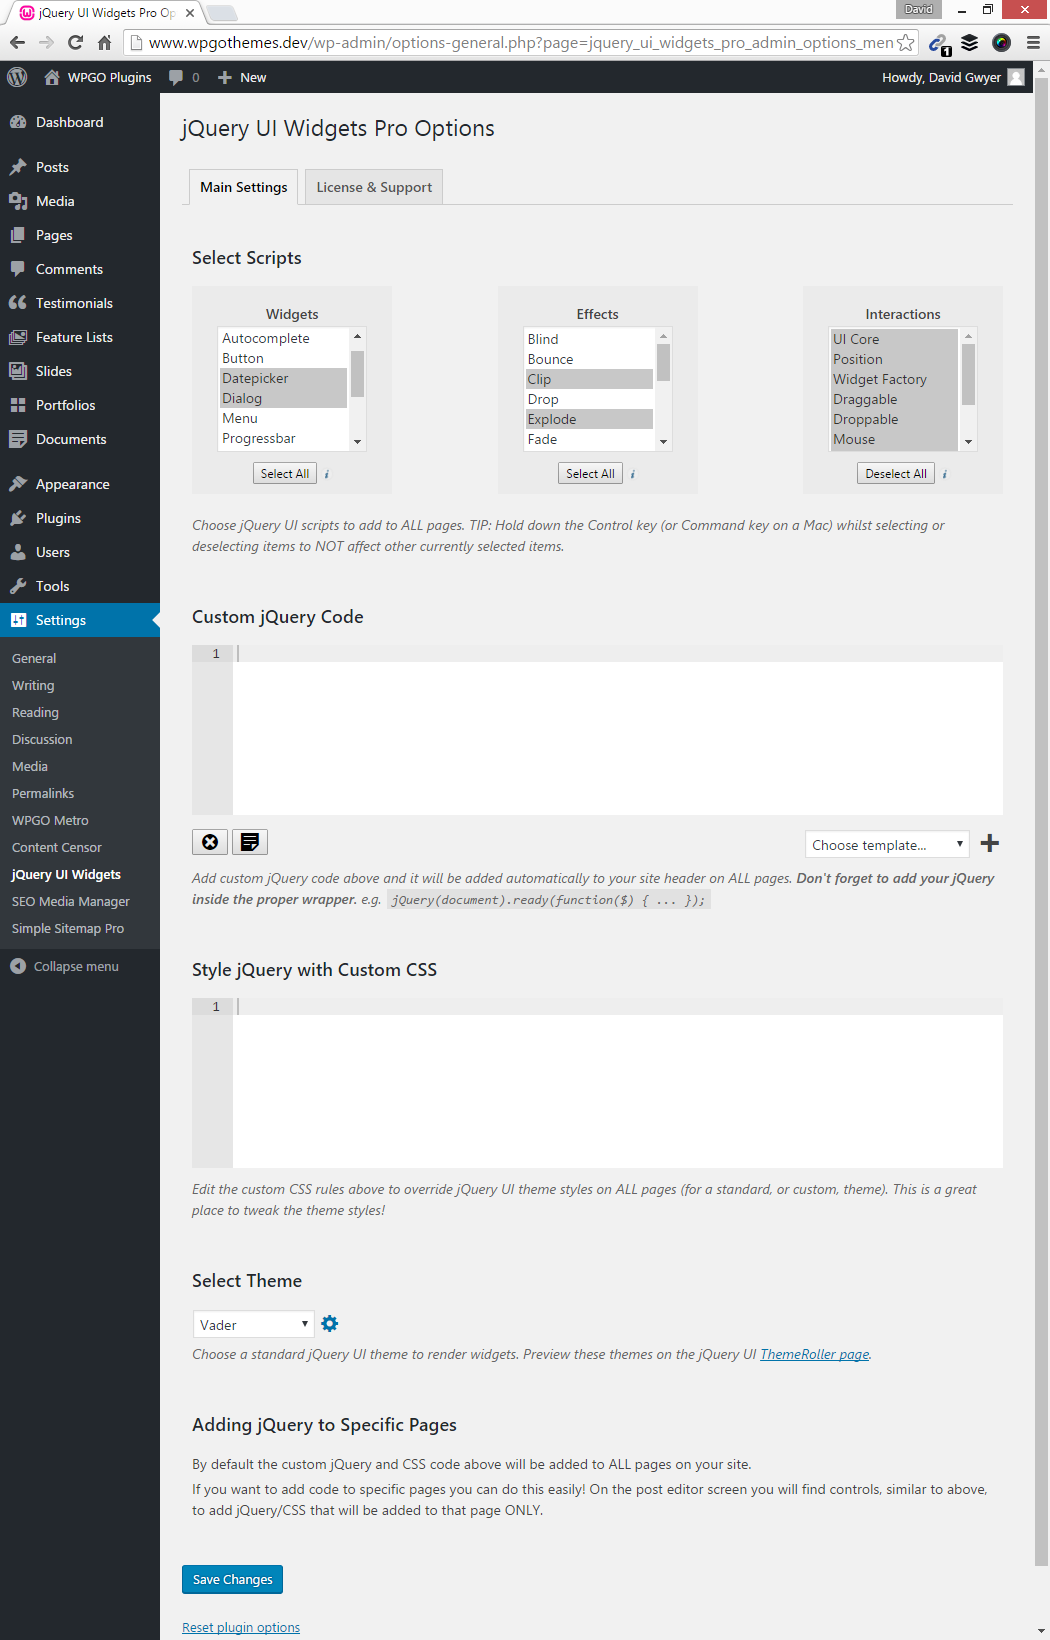 Totally revamped plugin options page. (Pro only)